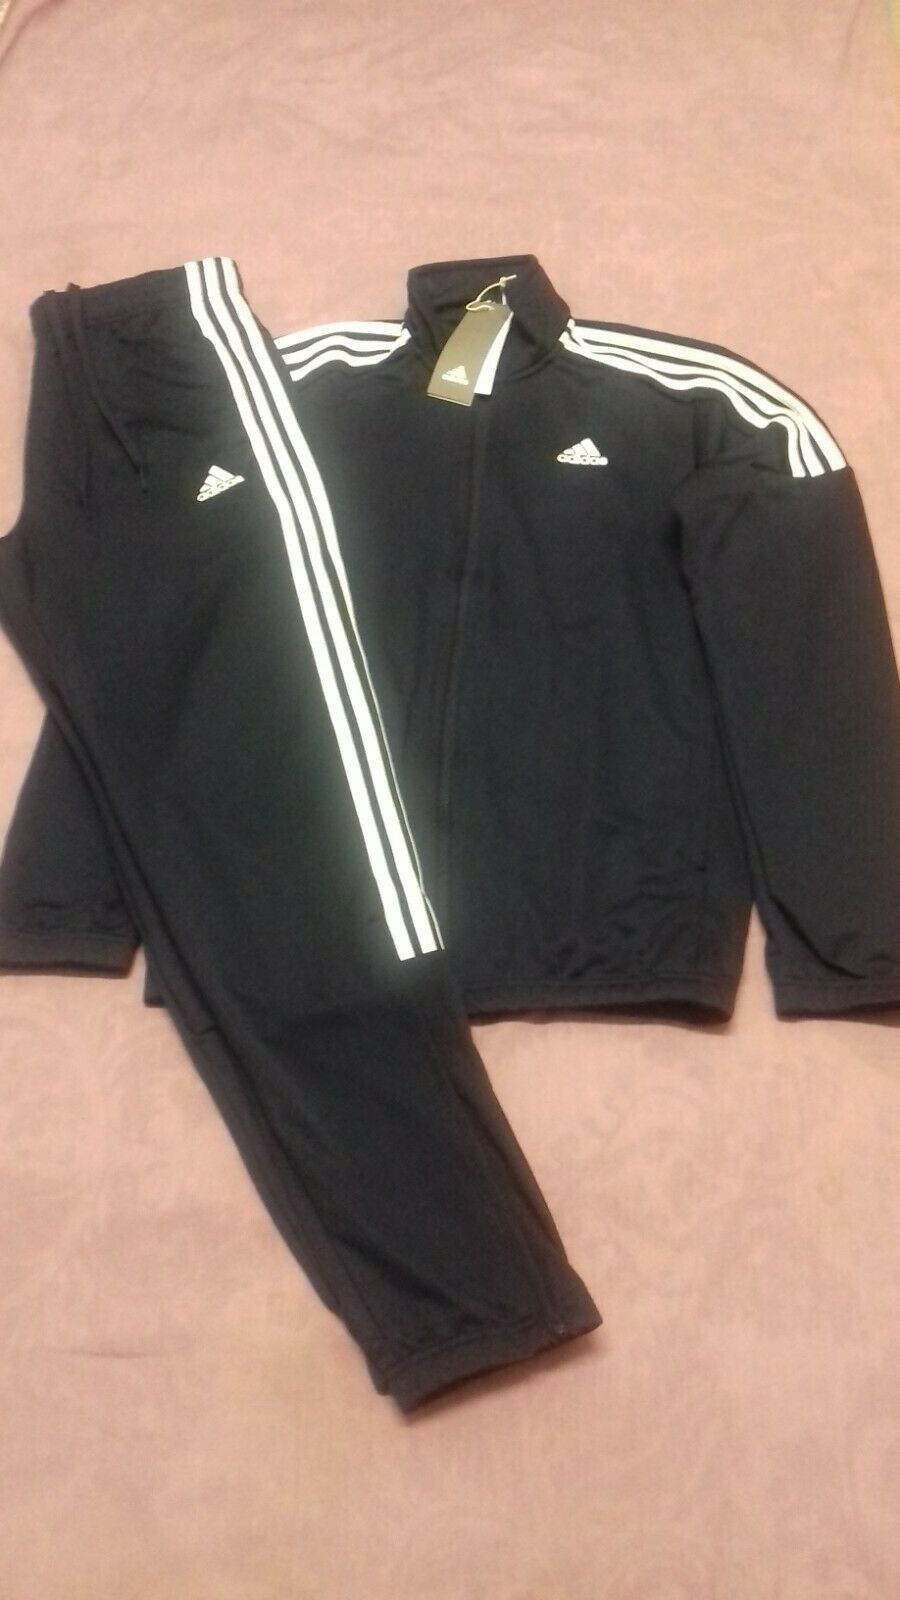 Adidas Men's/Boys Tracksuit Zip Up Top/Bottoms Navy, Size XS/15-16 Years - BNWT